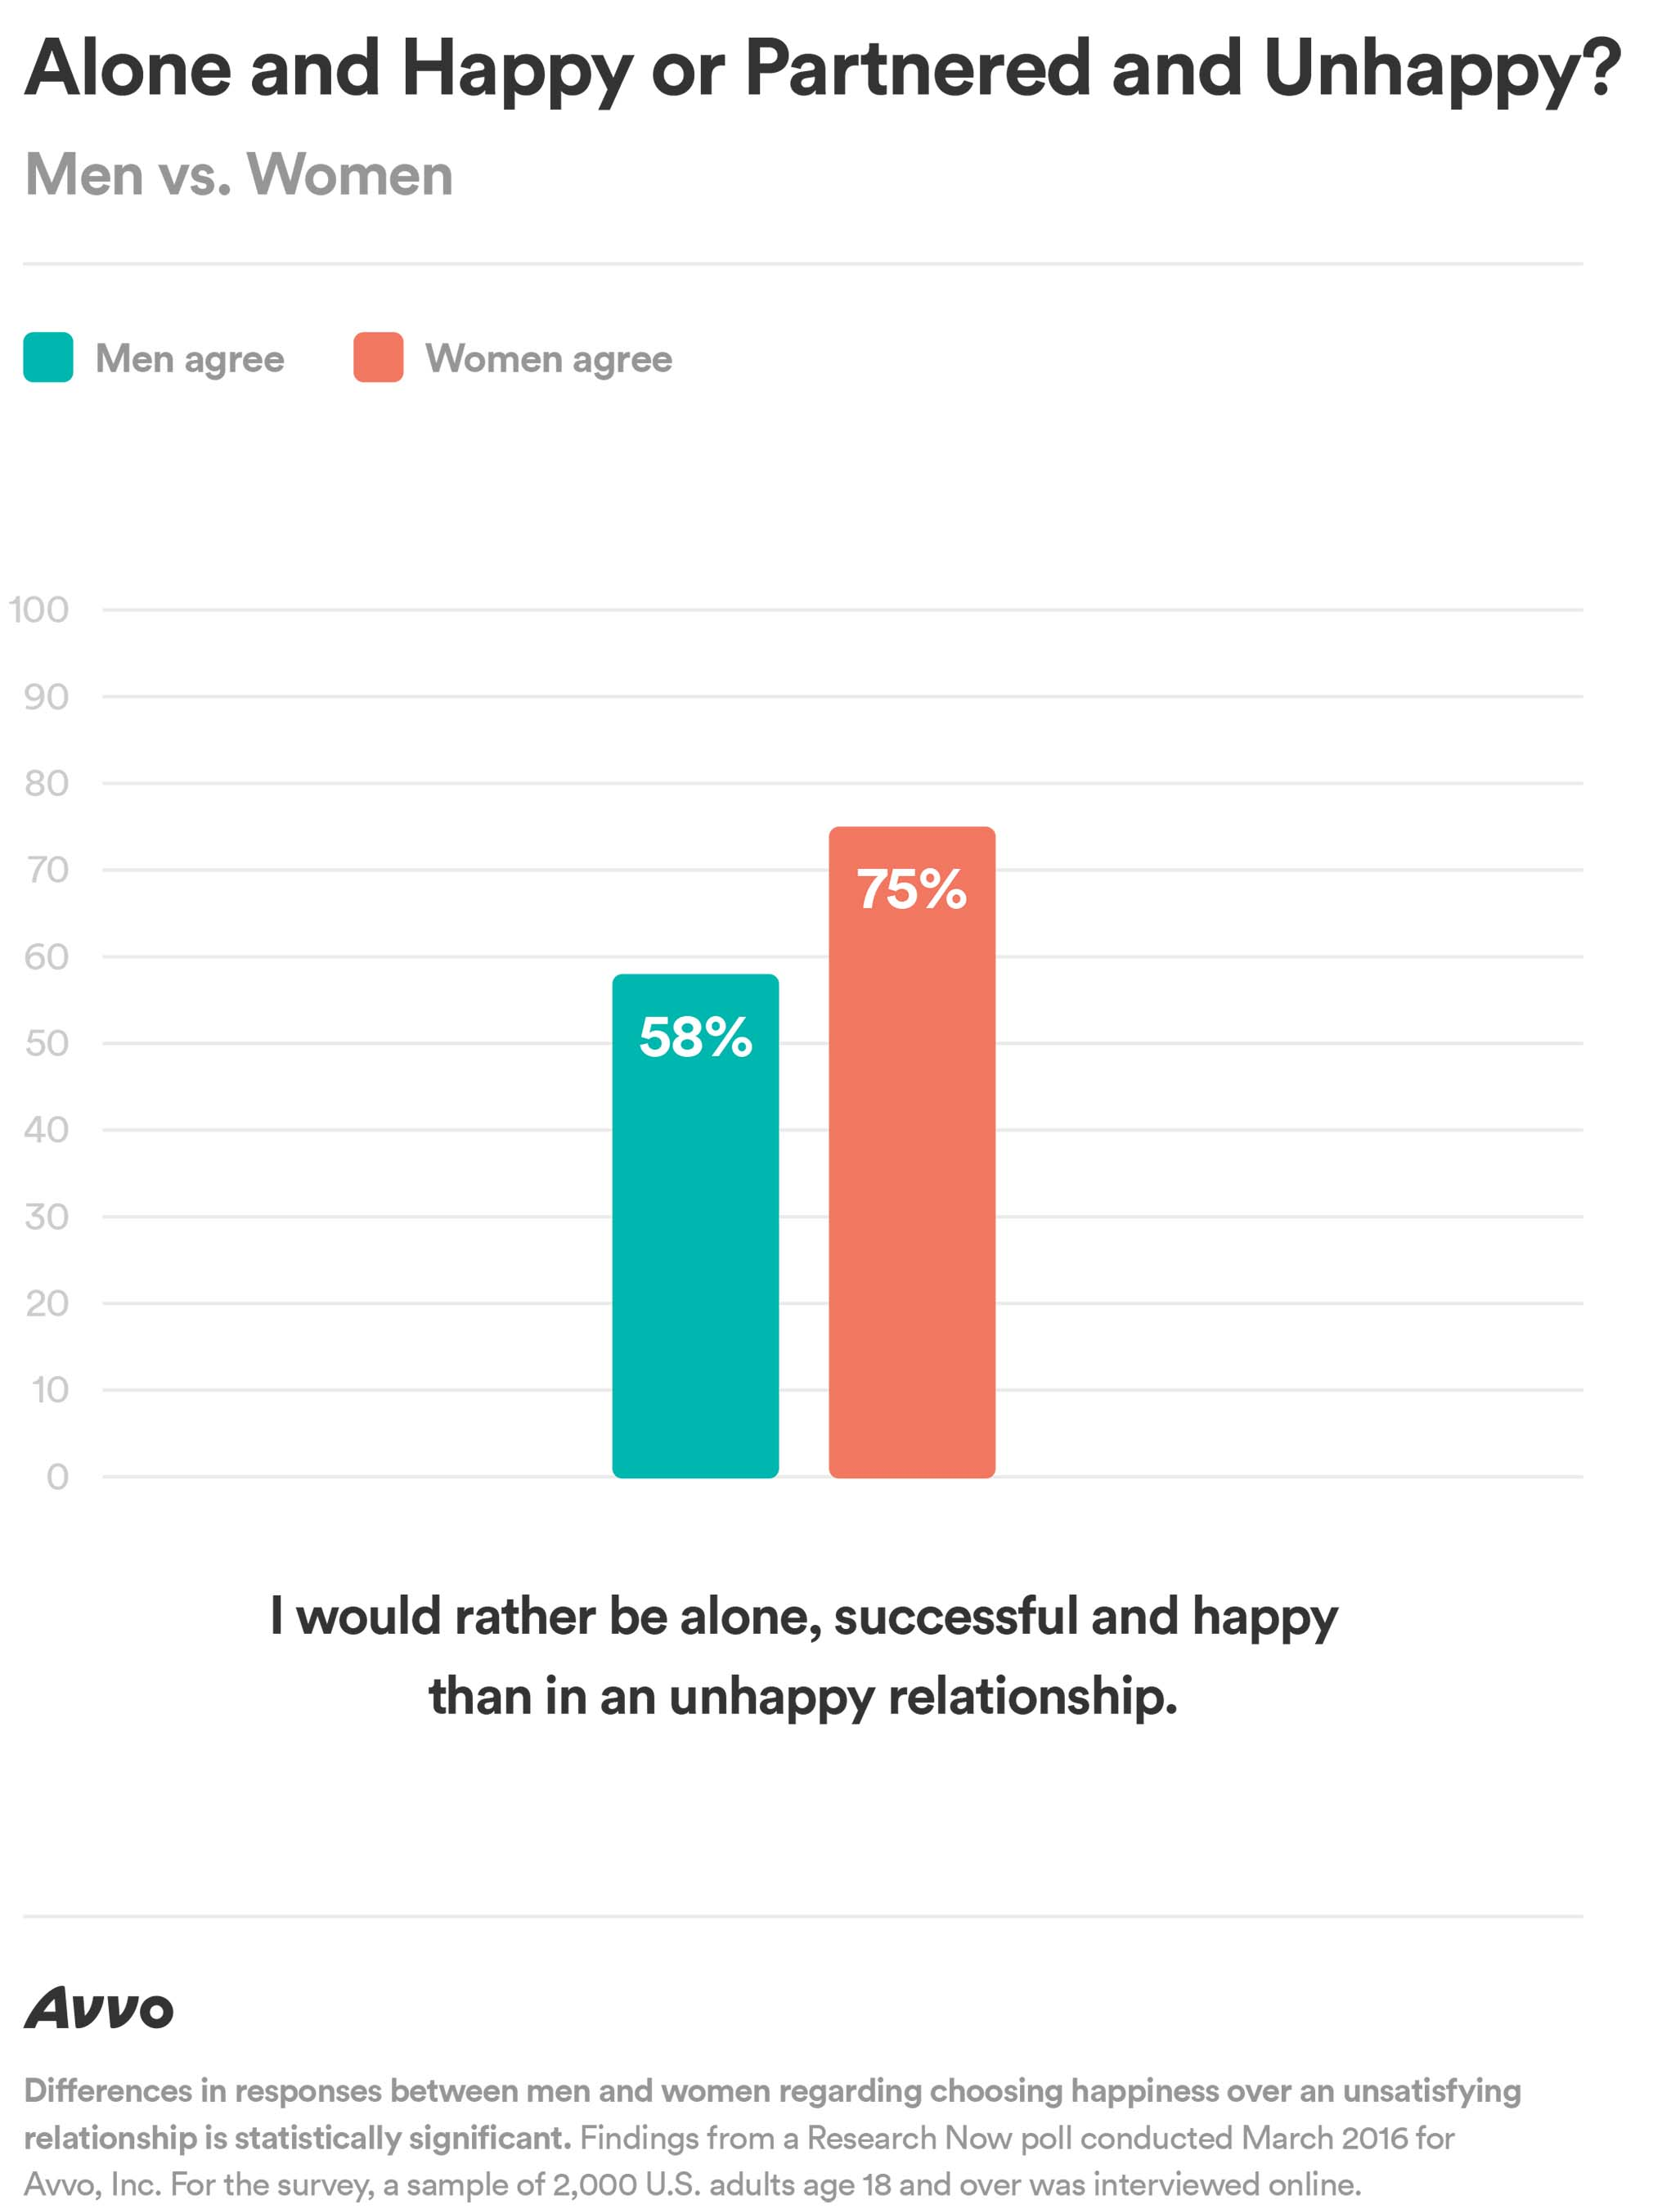 Alone and Happy or Partnered and Unhappy – Men vs. Women